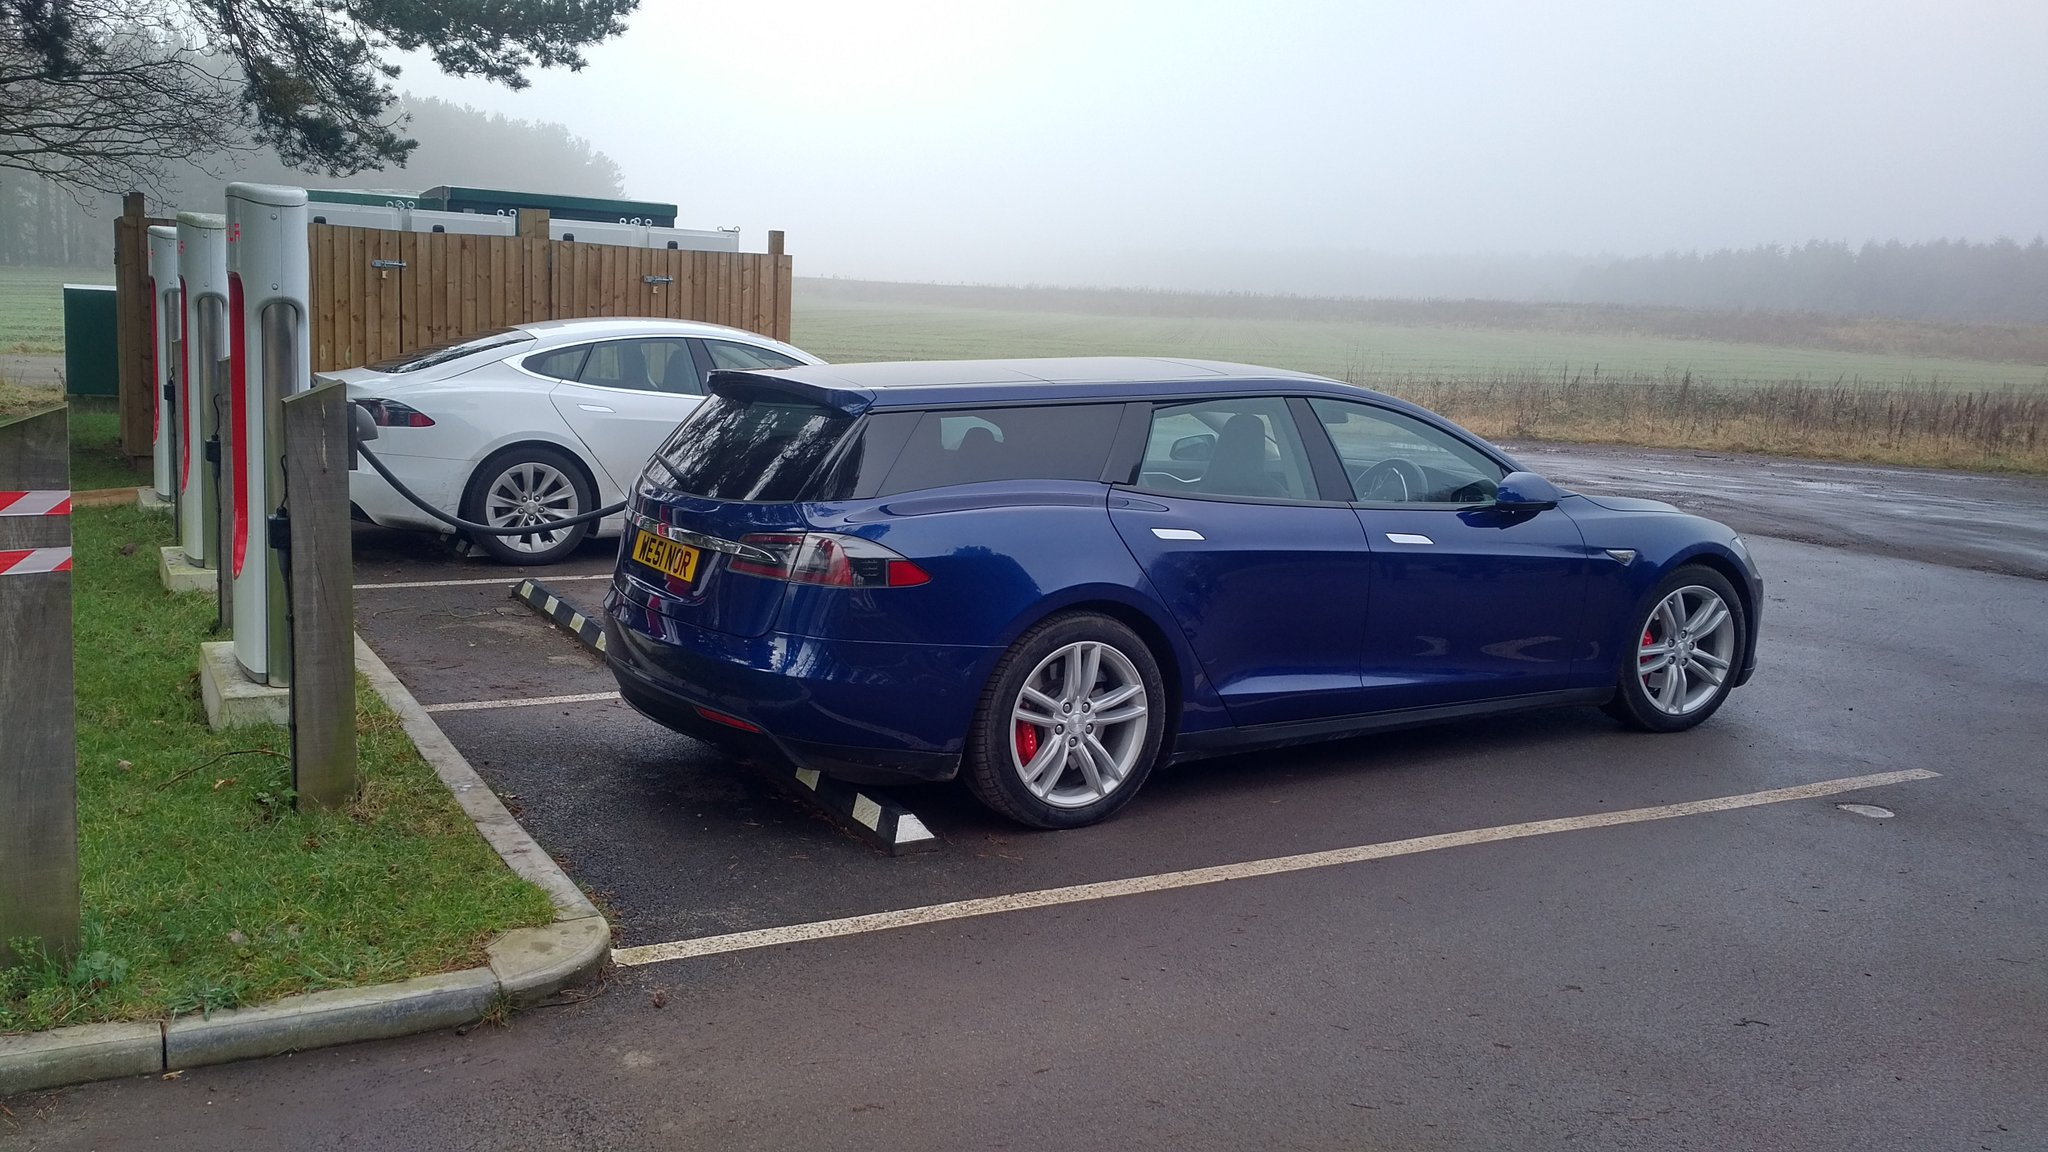 questnorfolk-model-s-wagon-shooting-brake-supercharger